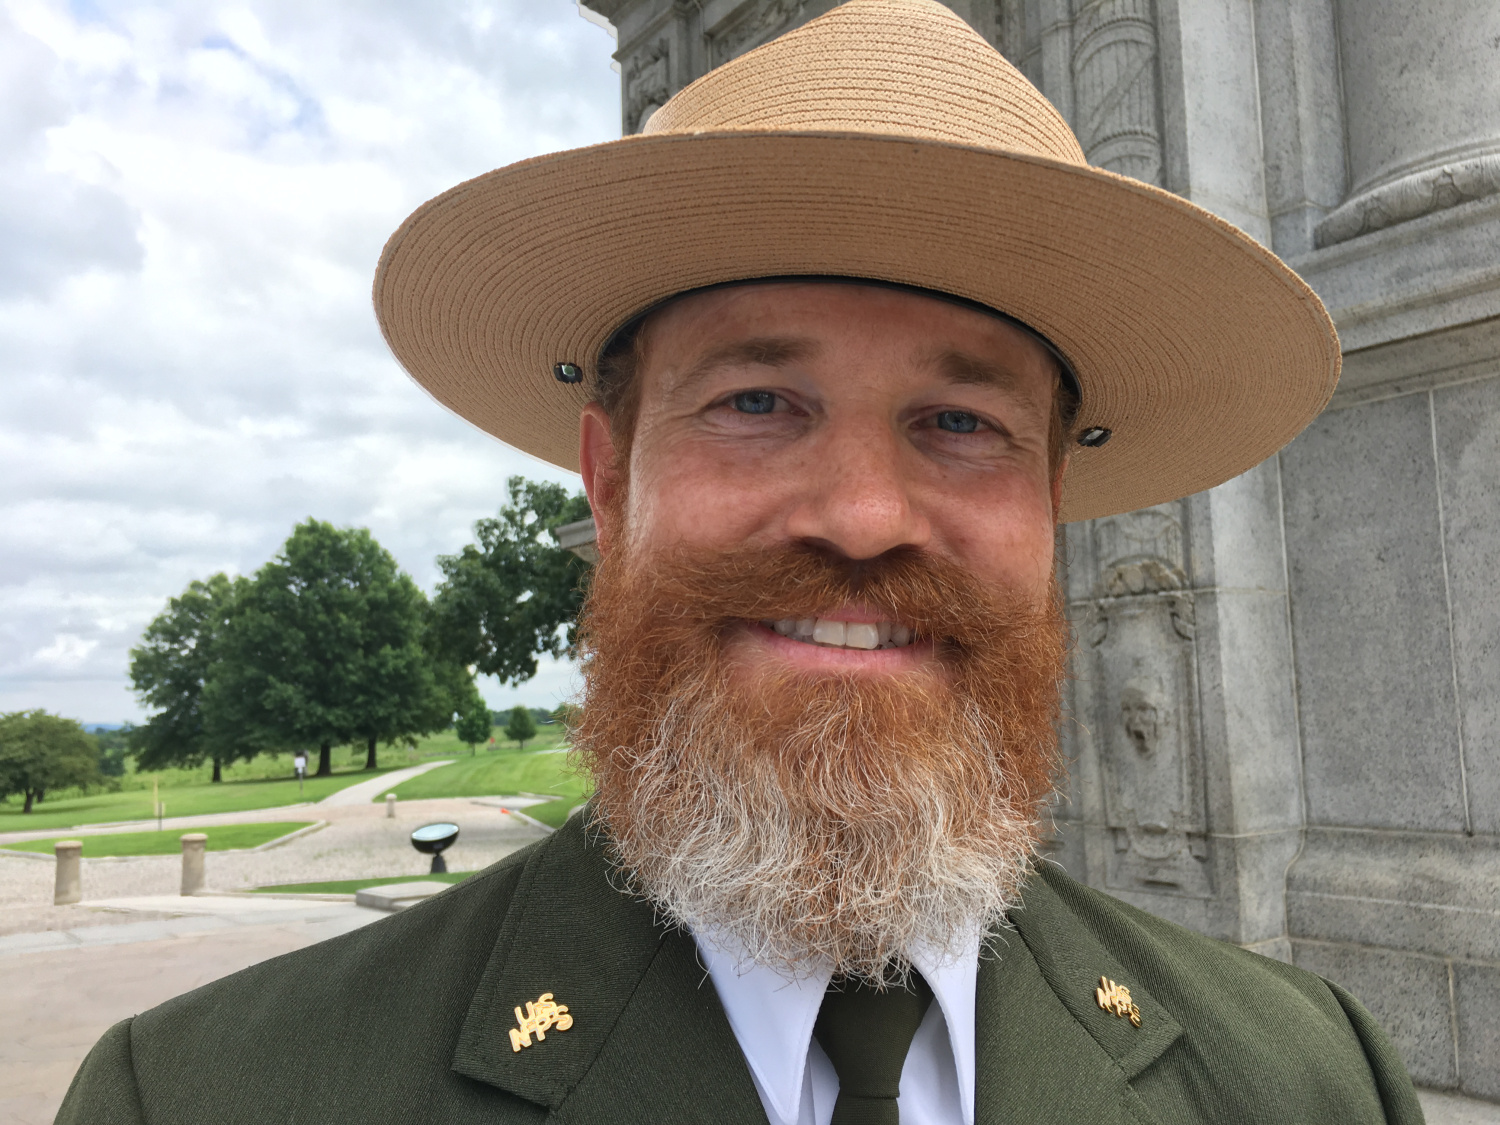 Steve Sims Takes the Reins at Valley Forge National Historical Park